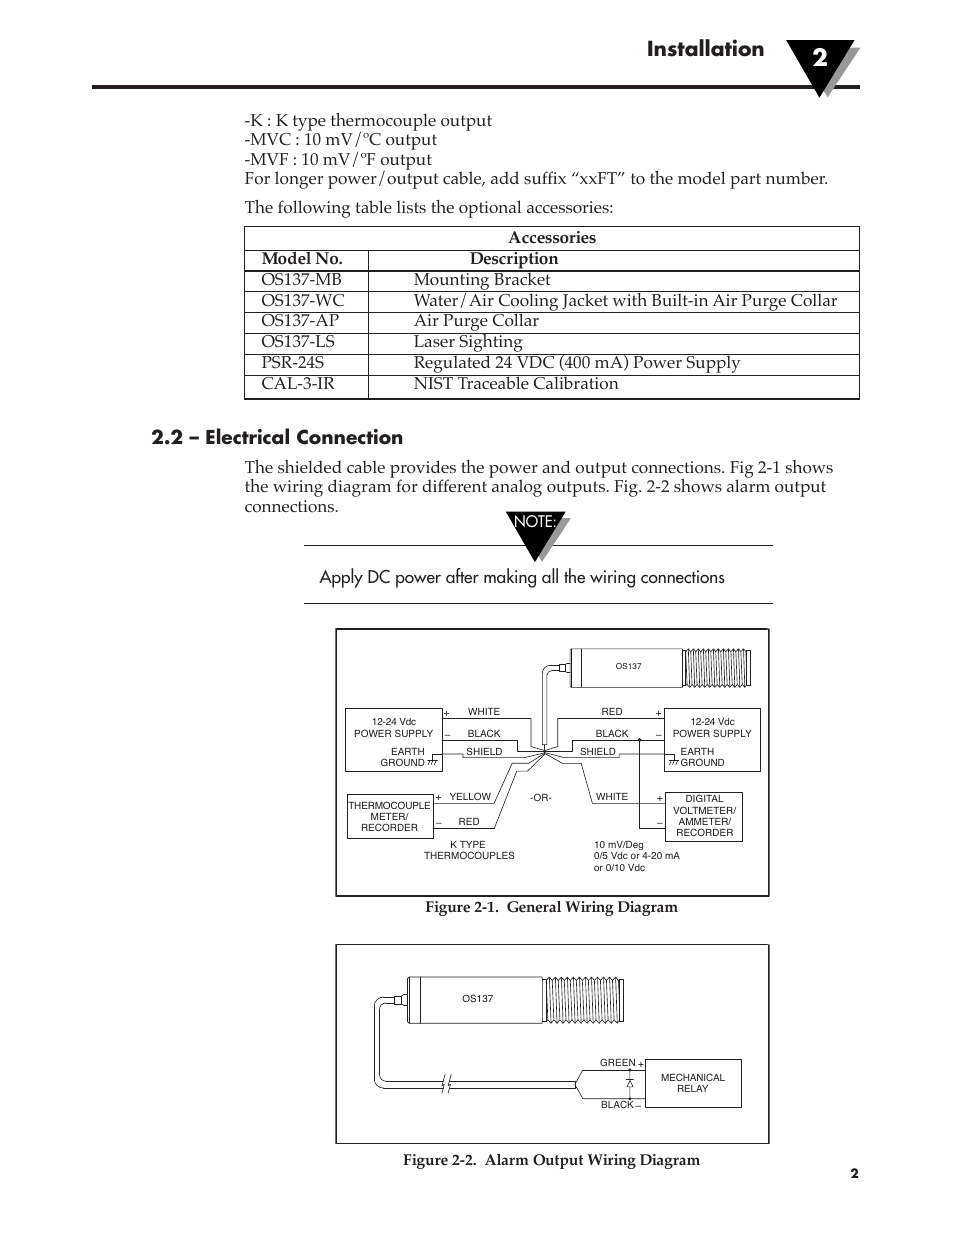 medium resolution of  installation 2 electrical connection omega os137 user manual on valve wiring diagram